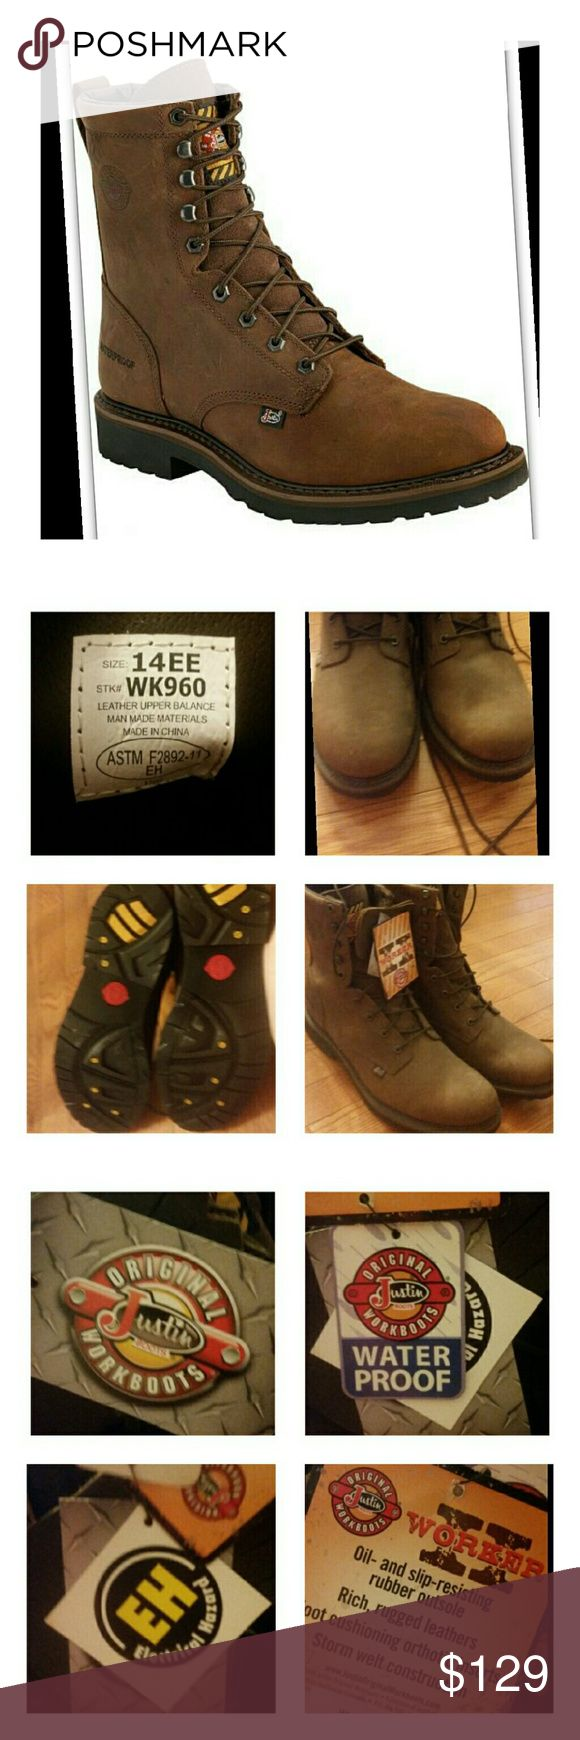 JUSTIN WORK BOOTS! BRAND NEW Size 14EE! See pics for details and material info! Leather boots! Brand New without box! Waterproof! Justin Boots Shoes Boots